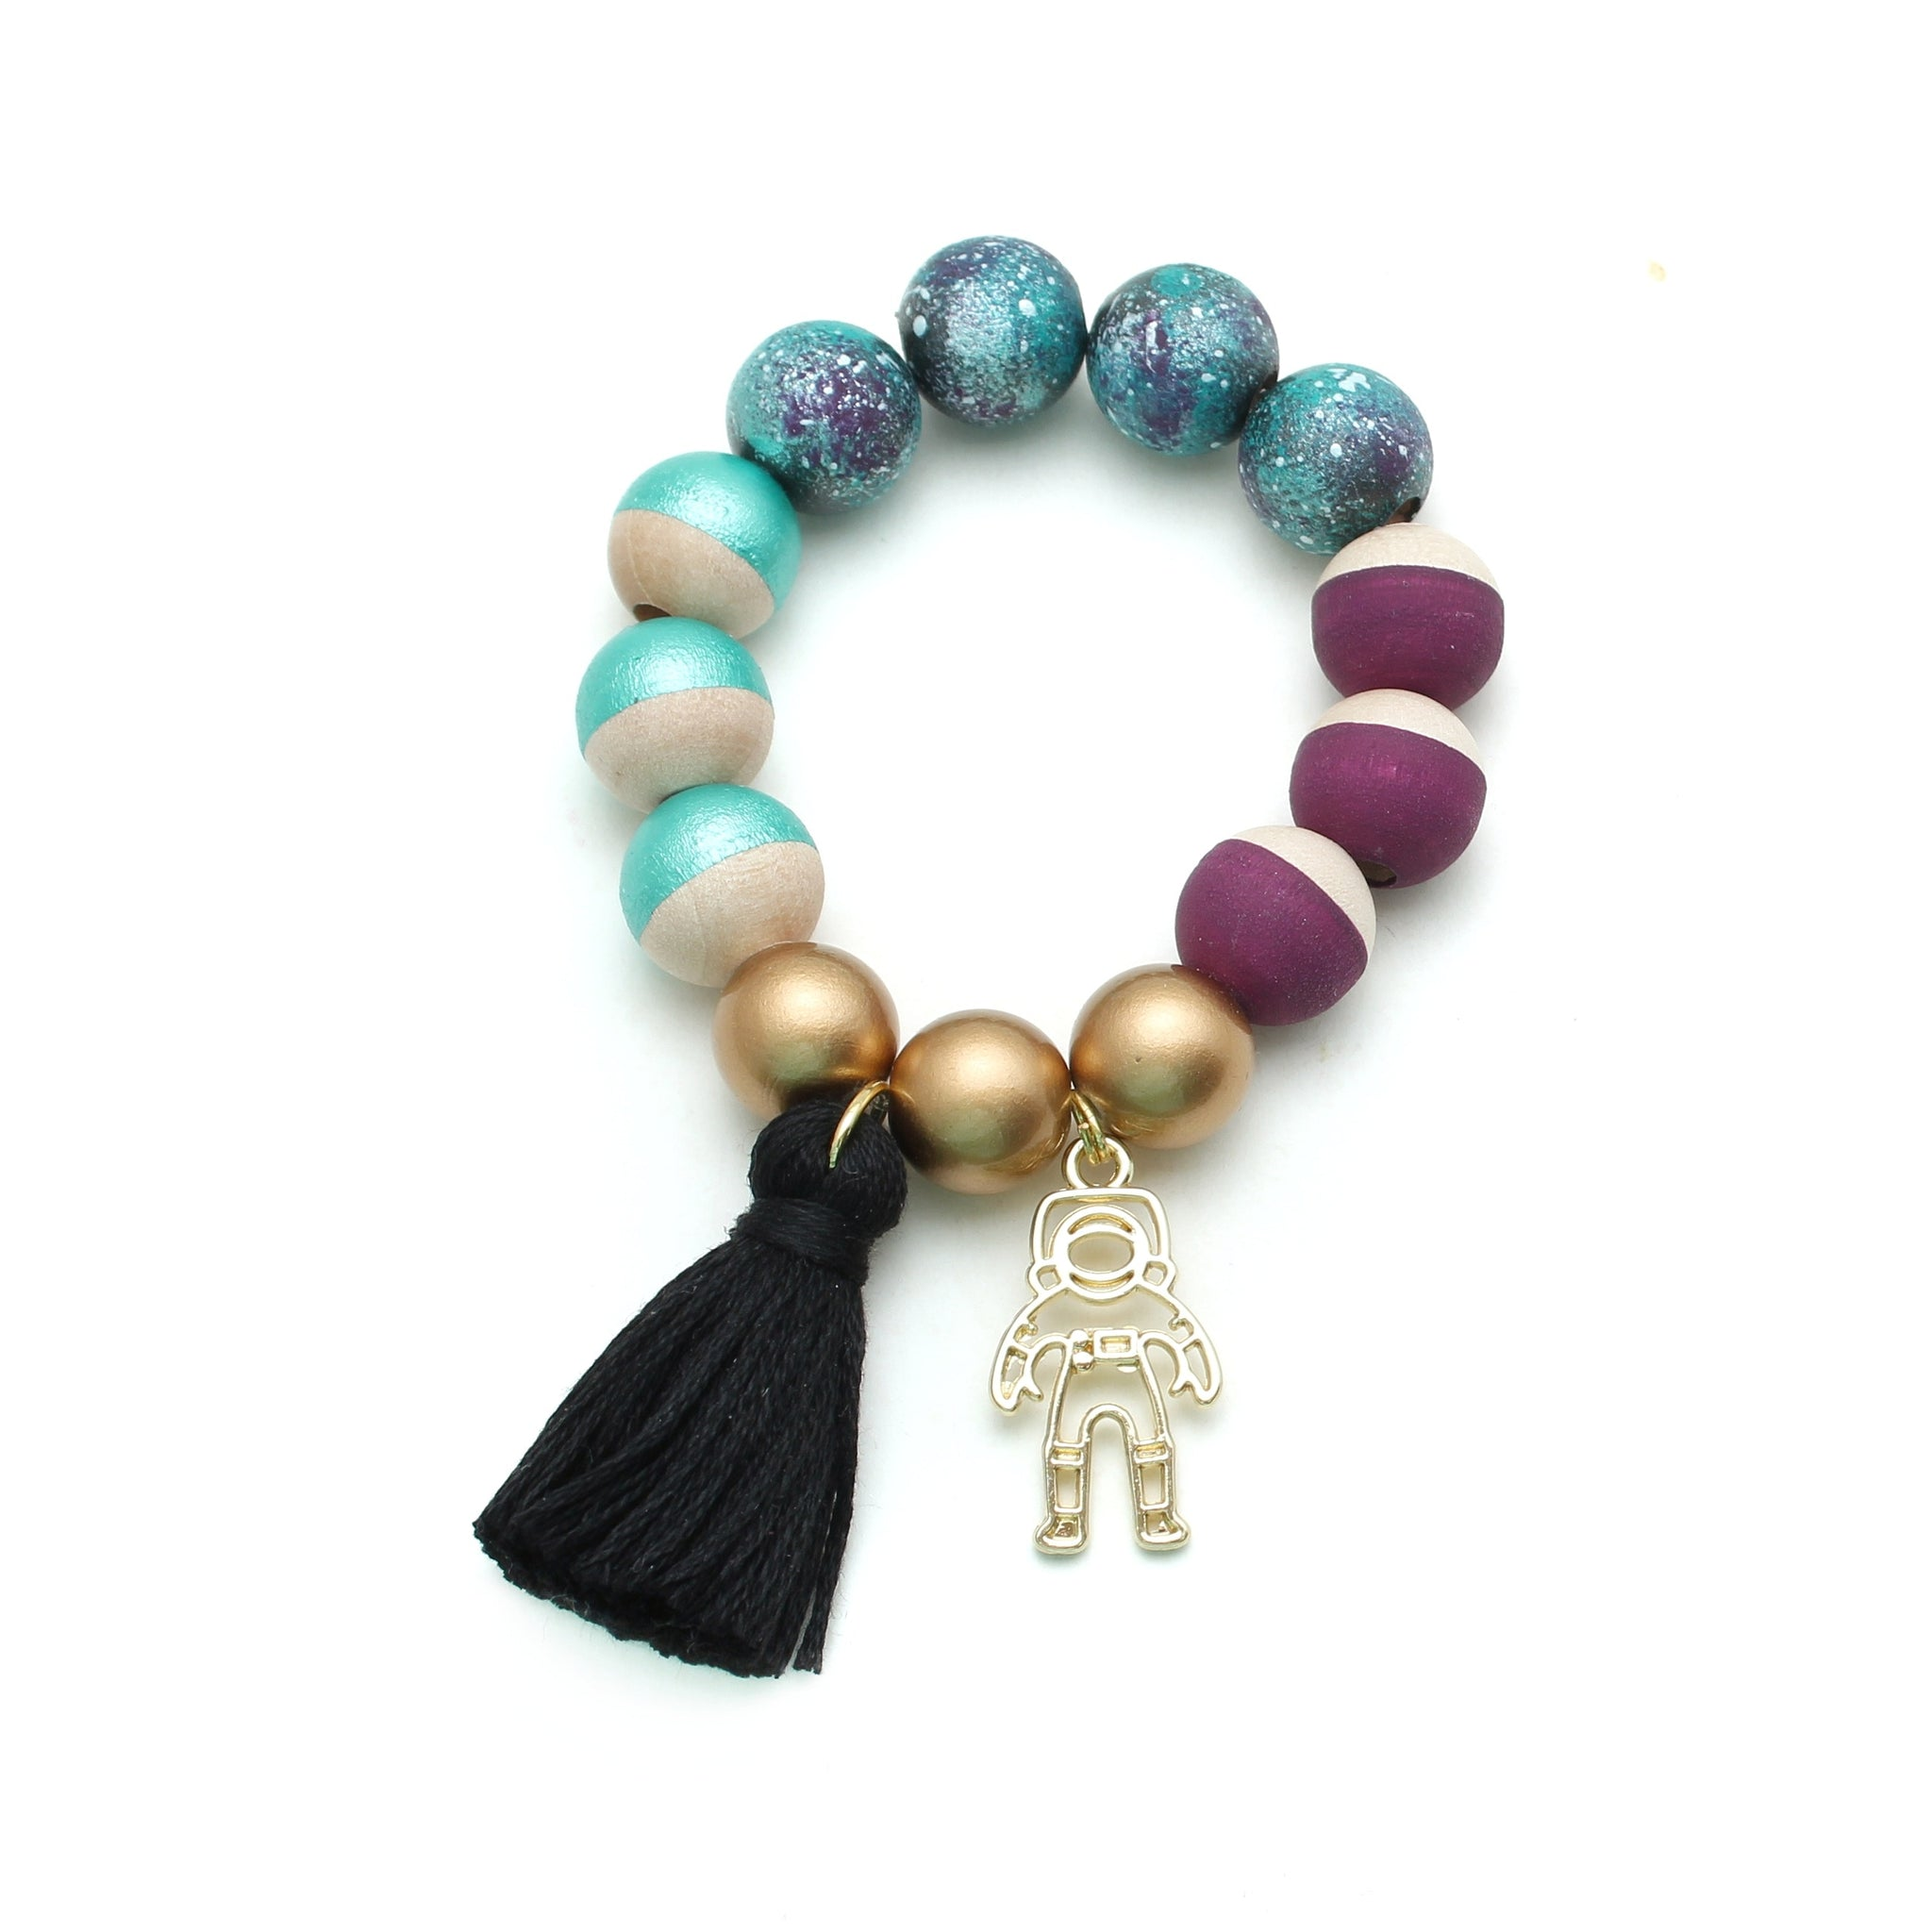 Astronaut Charm and Tassel Hand Painted Bracelet